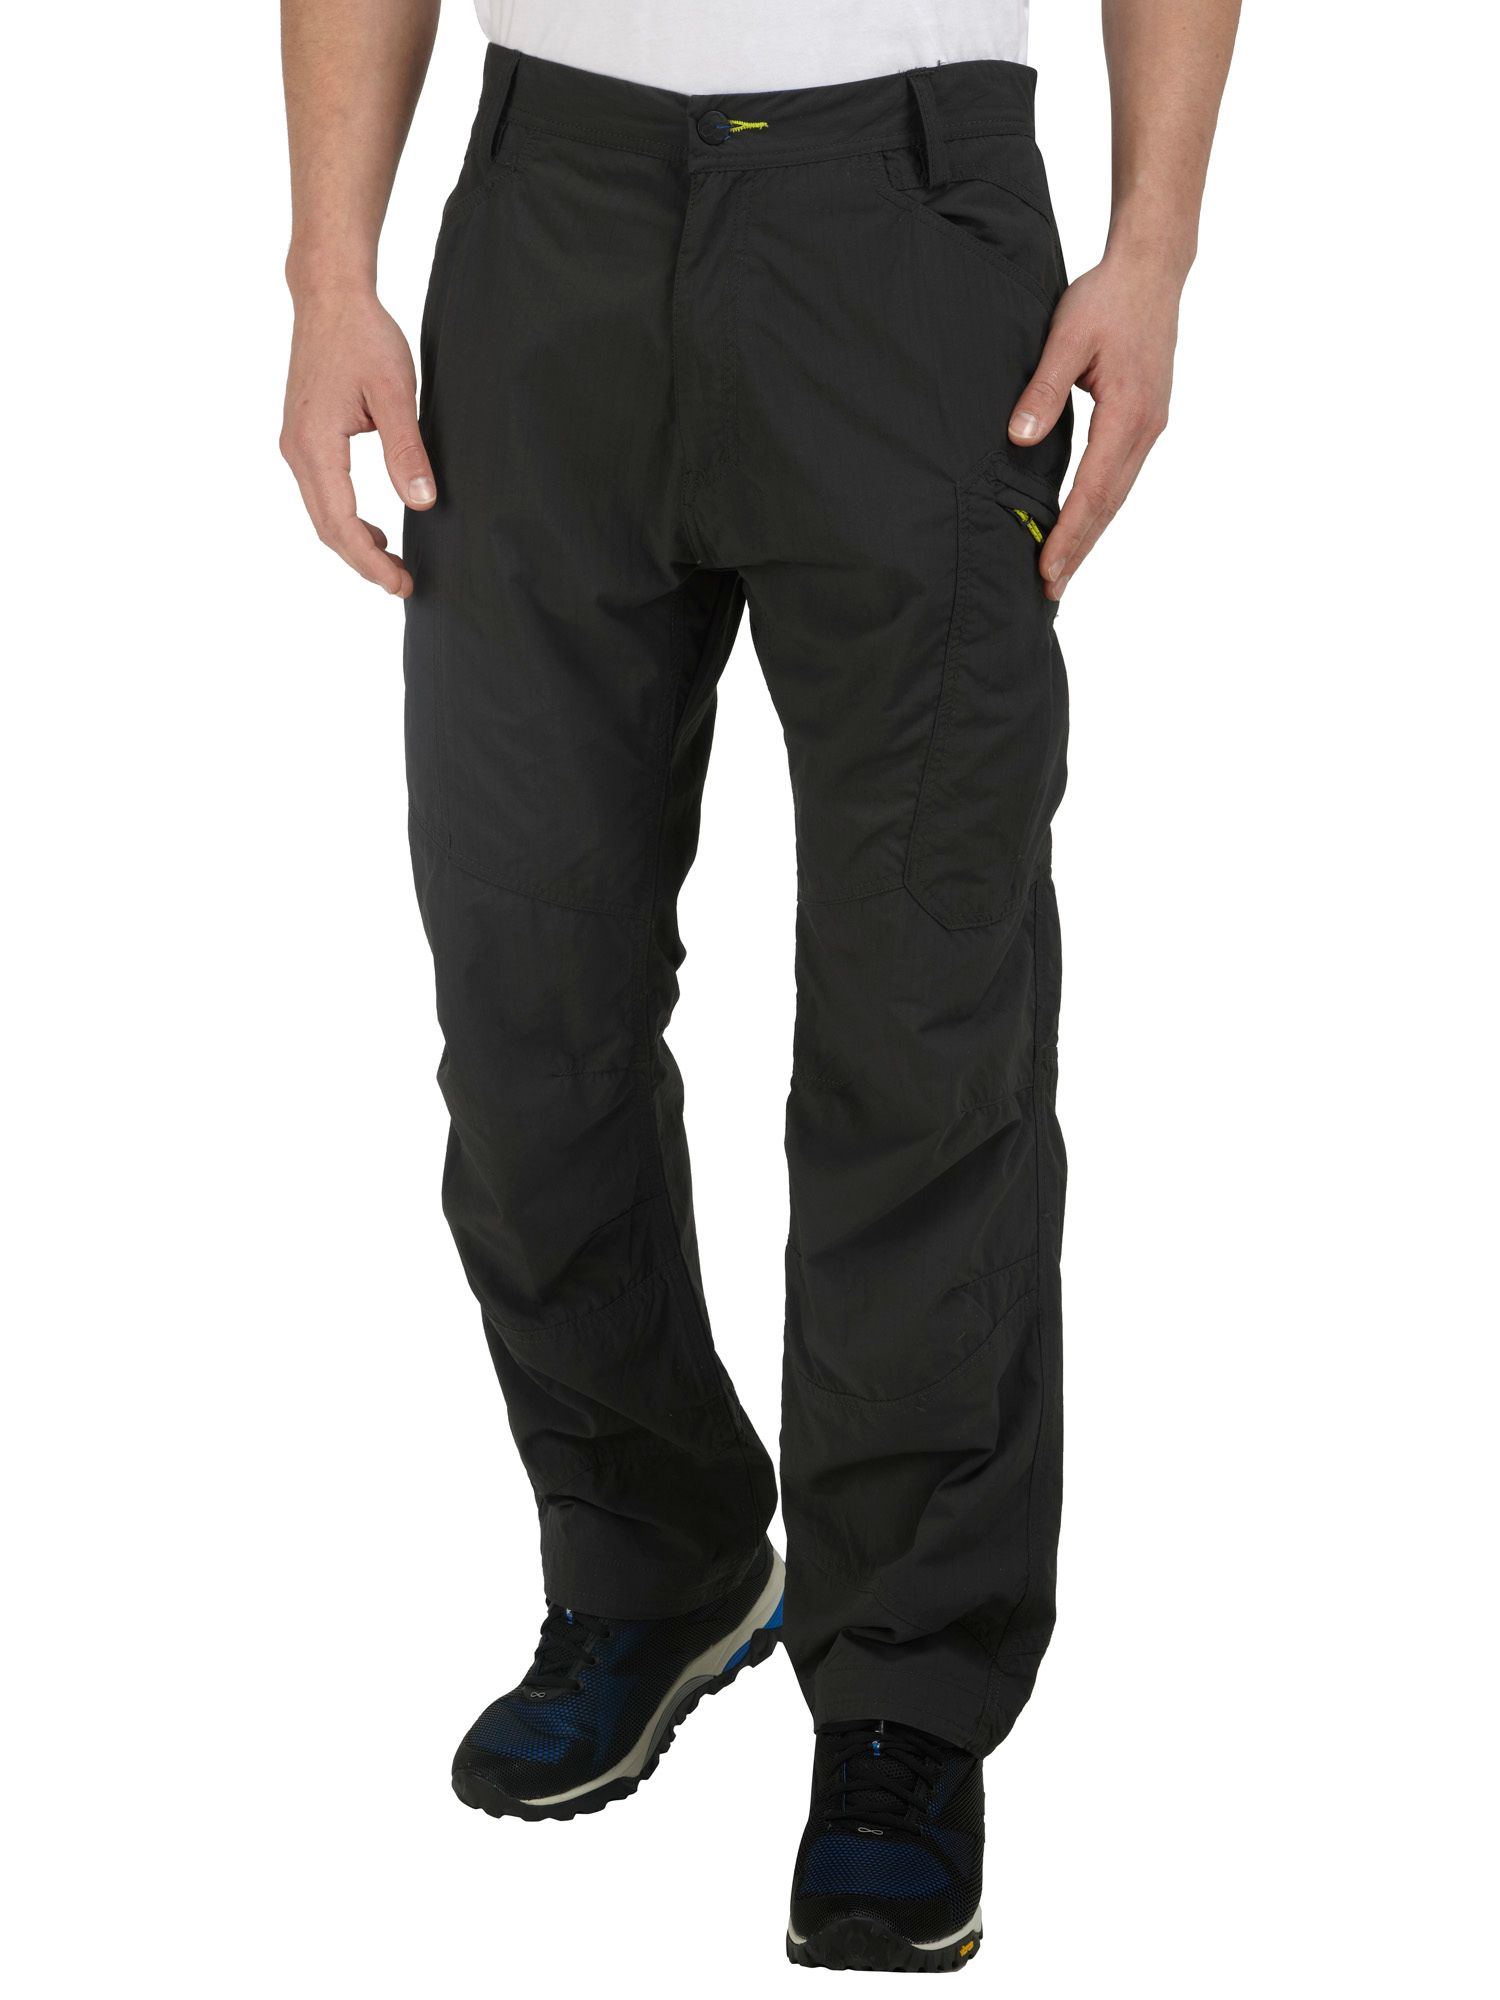 Active TCZ tech cargo trousers